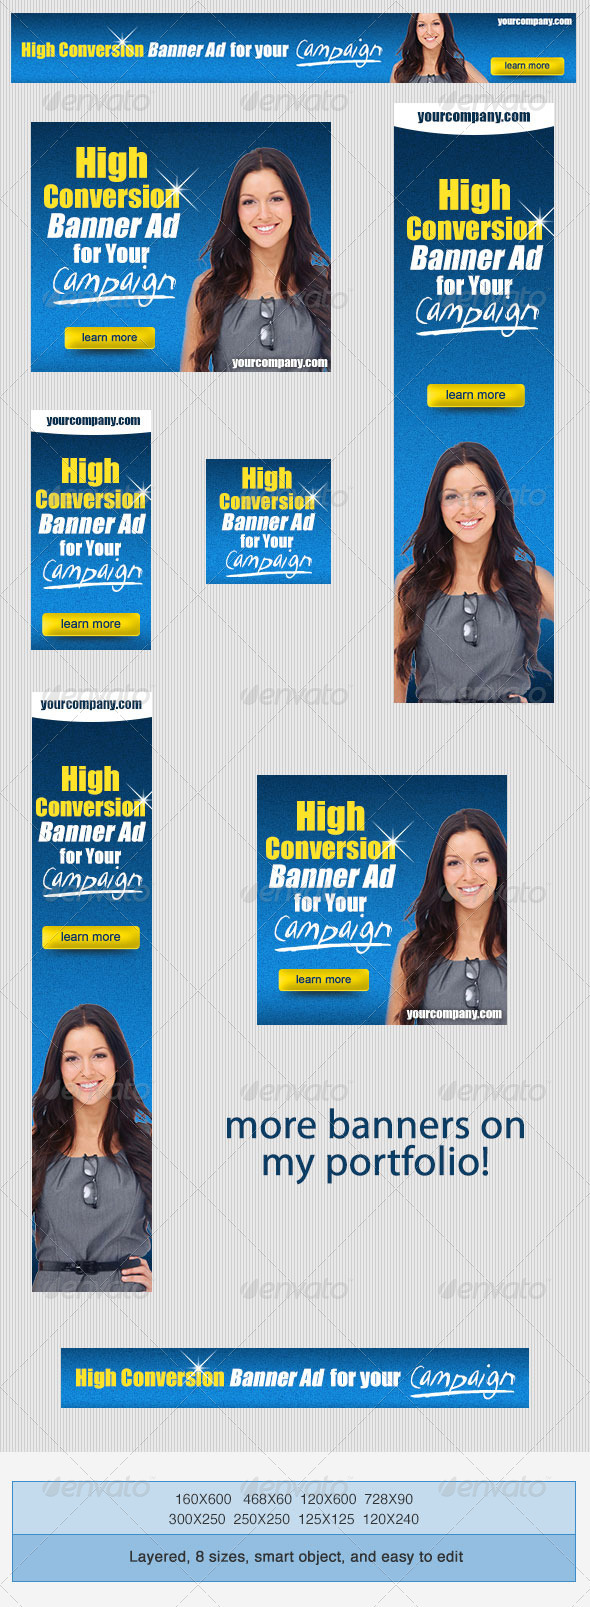 High Conversion Banner Ad PSD Template - Banners & Ads Web Elements